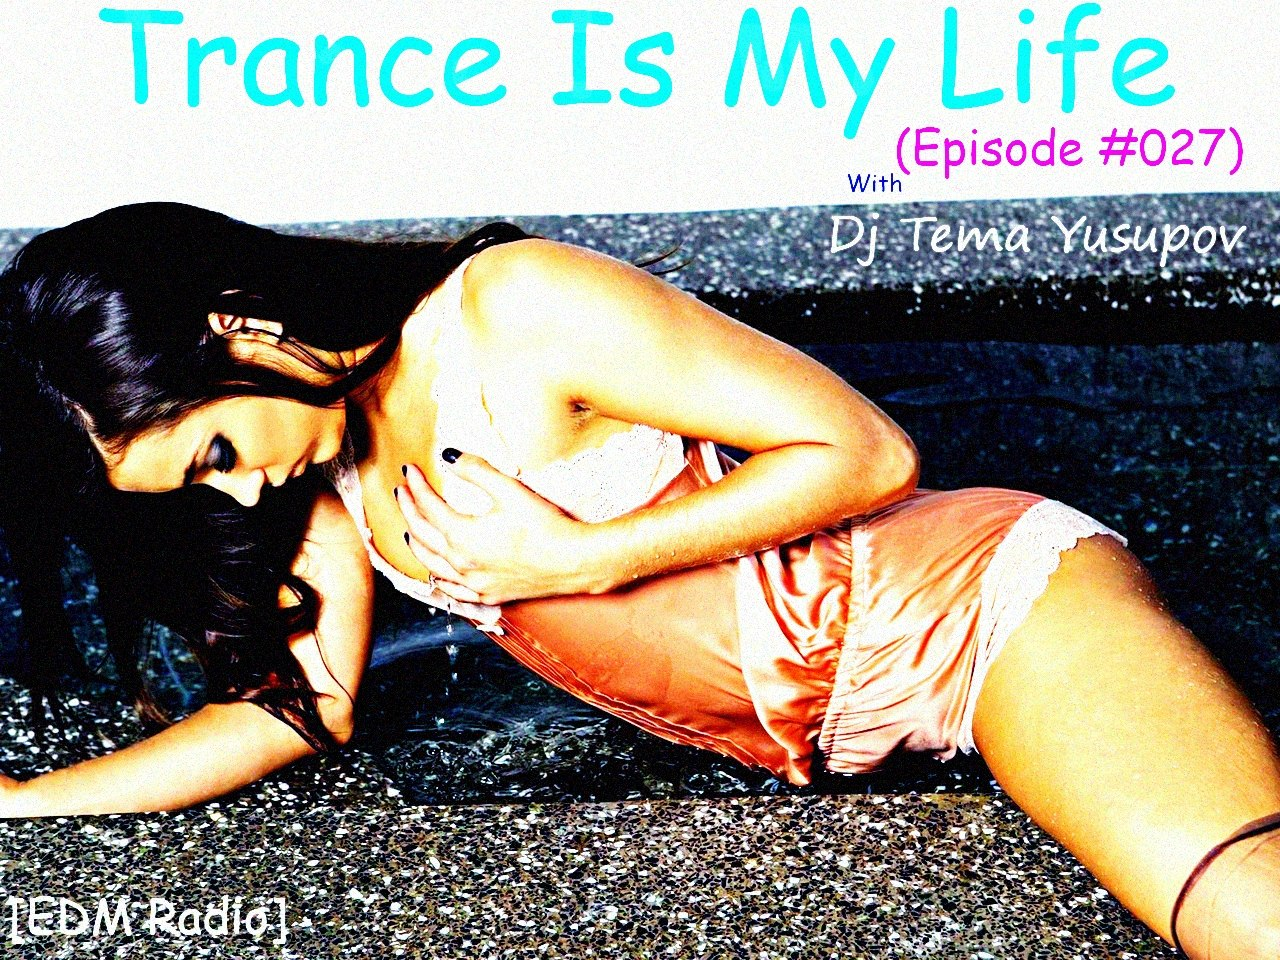 Dj Tema Yusupov - Trance Is My Life (Episode #027) [EDM Radio]